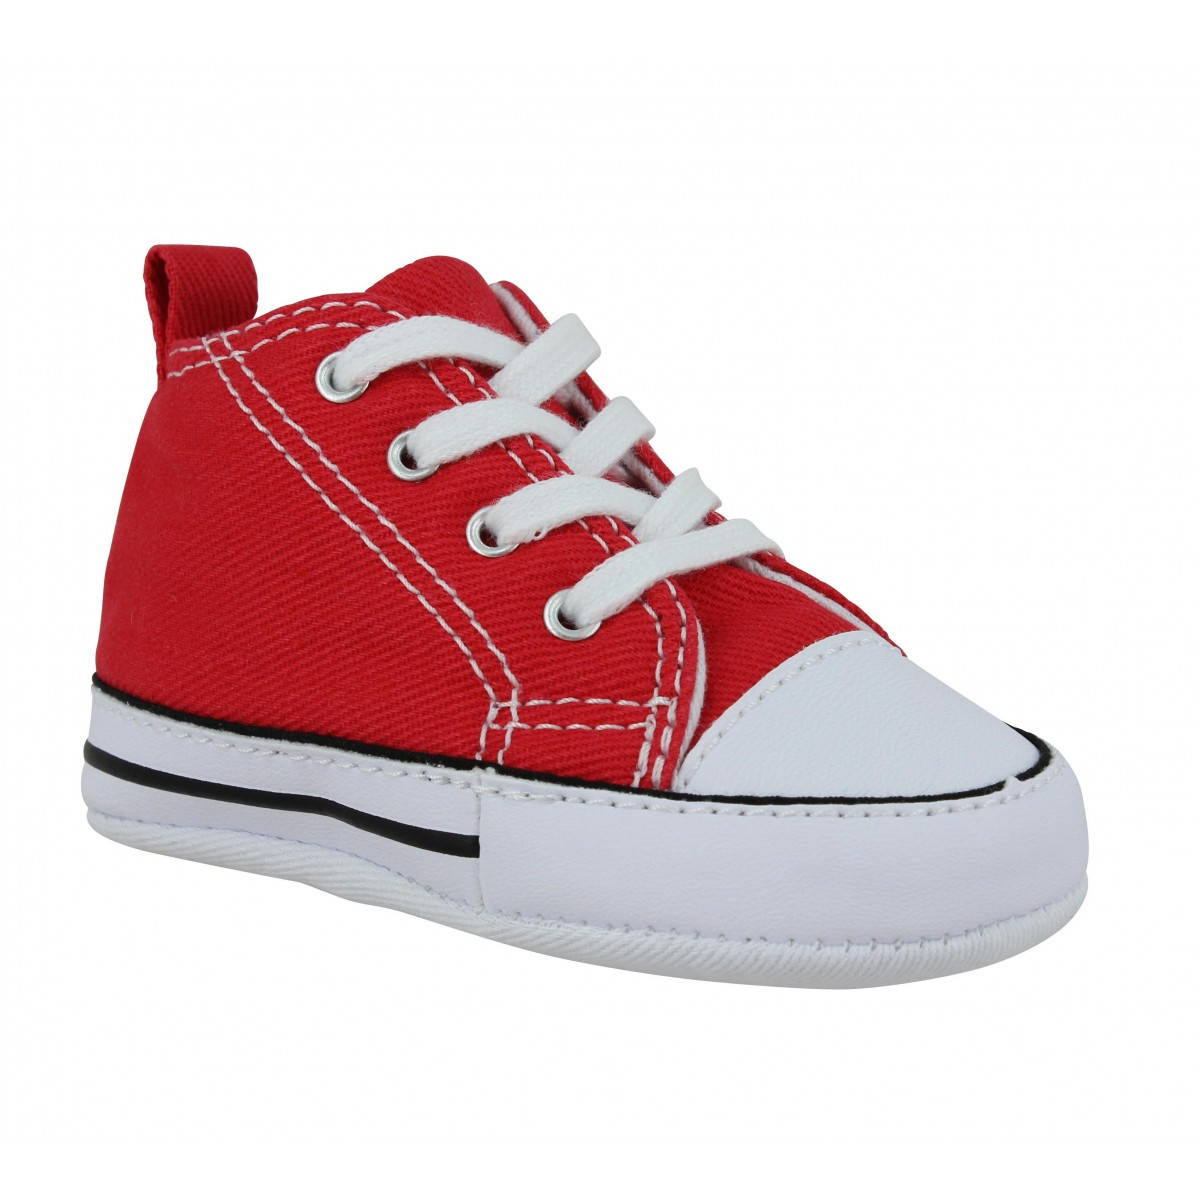 Converse Enfant First Star Toile...